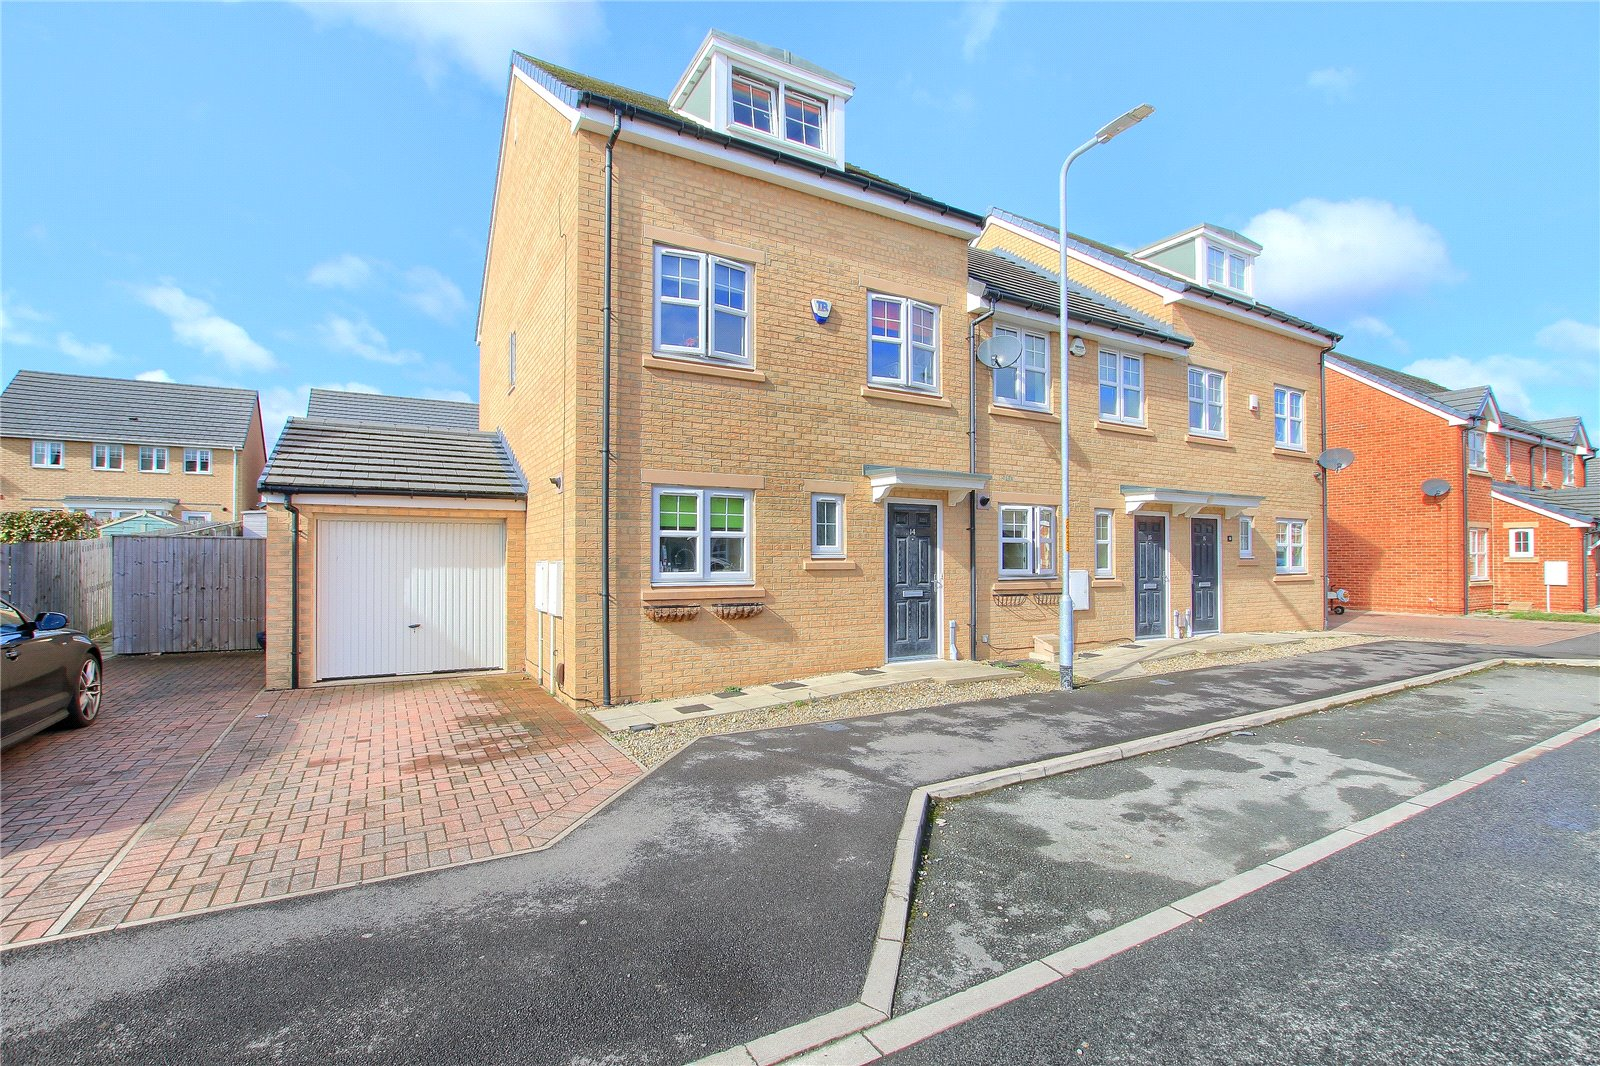 3 bed house for sale in Gable Court, Thornaby  - Property Image 1